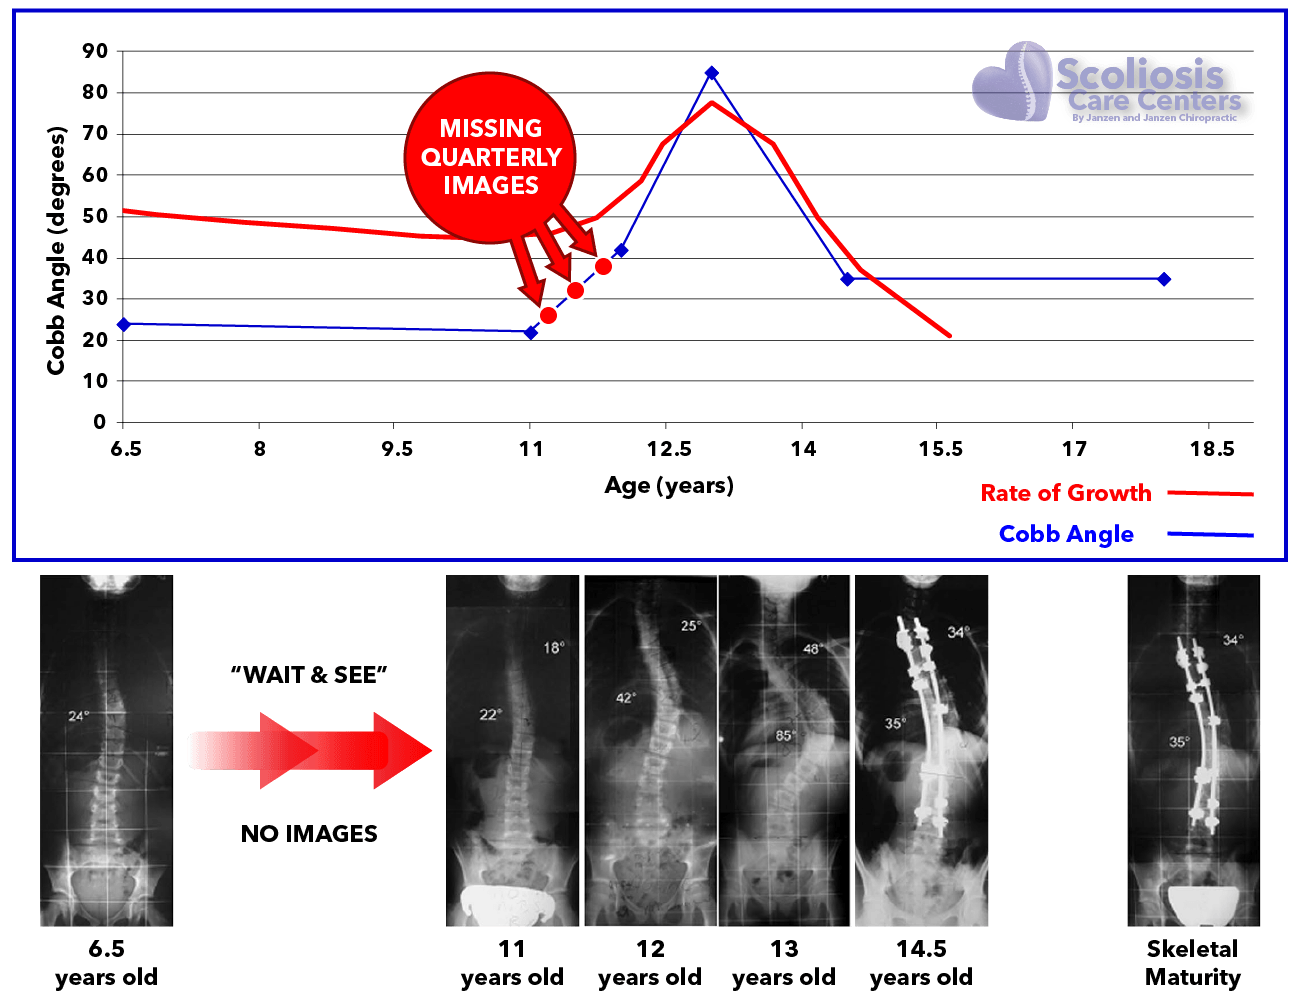 Missing quarterly images allows a scoliosis to worsen unchecked